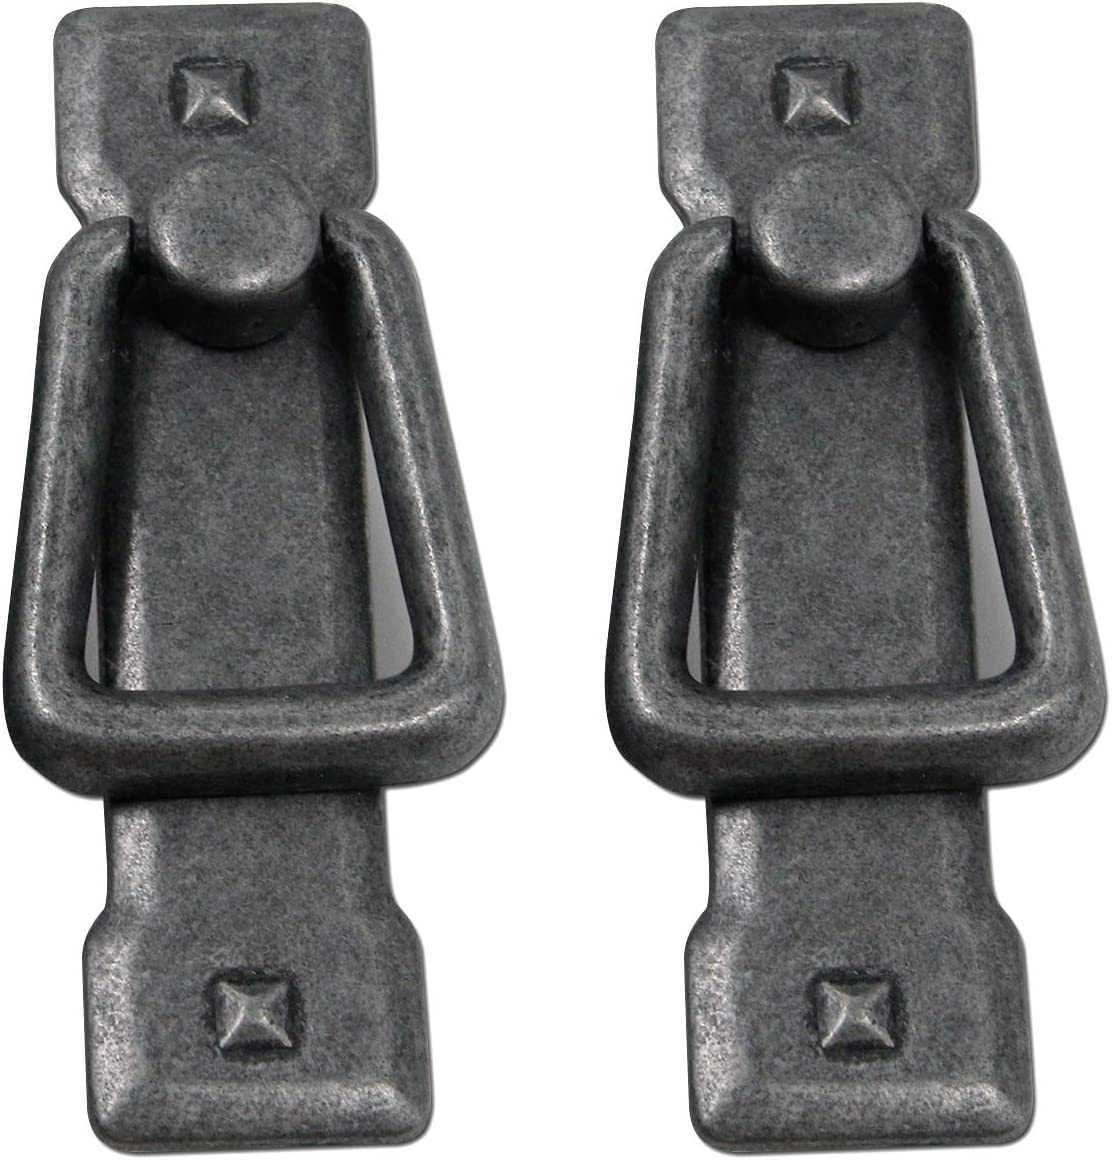 MTMTOOL 2-Pack Ancient Silver Mission Style Ring Cabinet Pull with Backplate,2.2